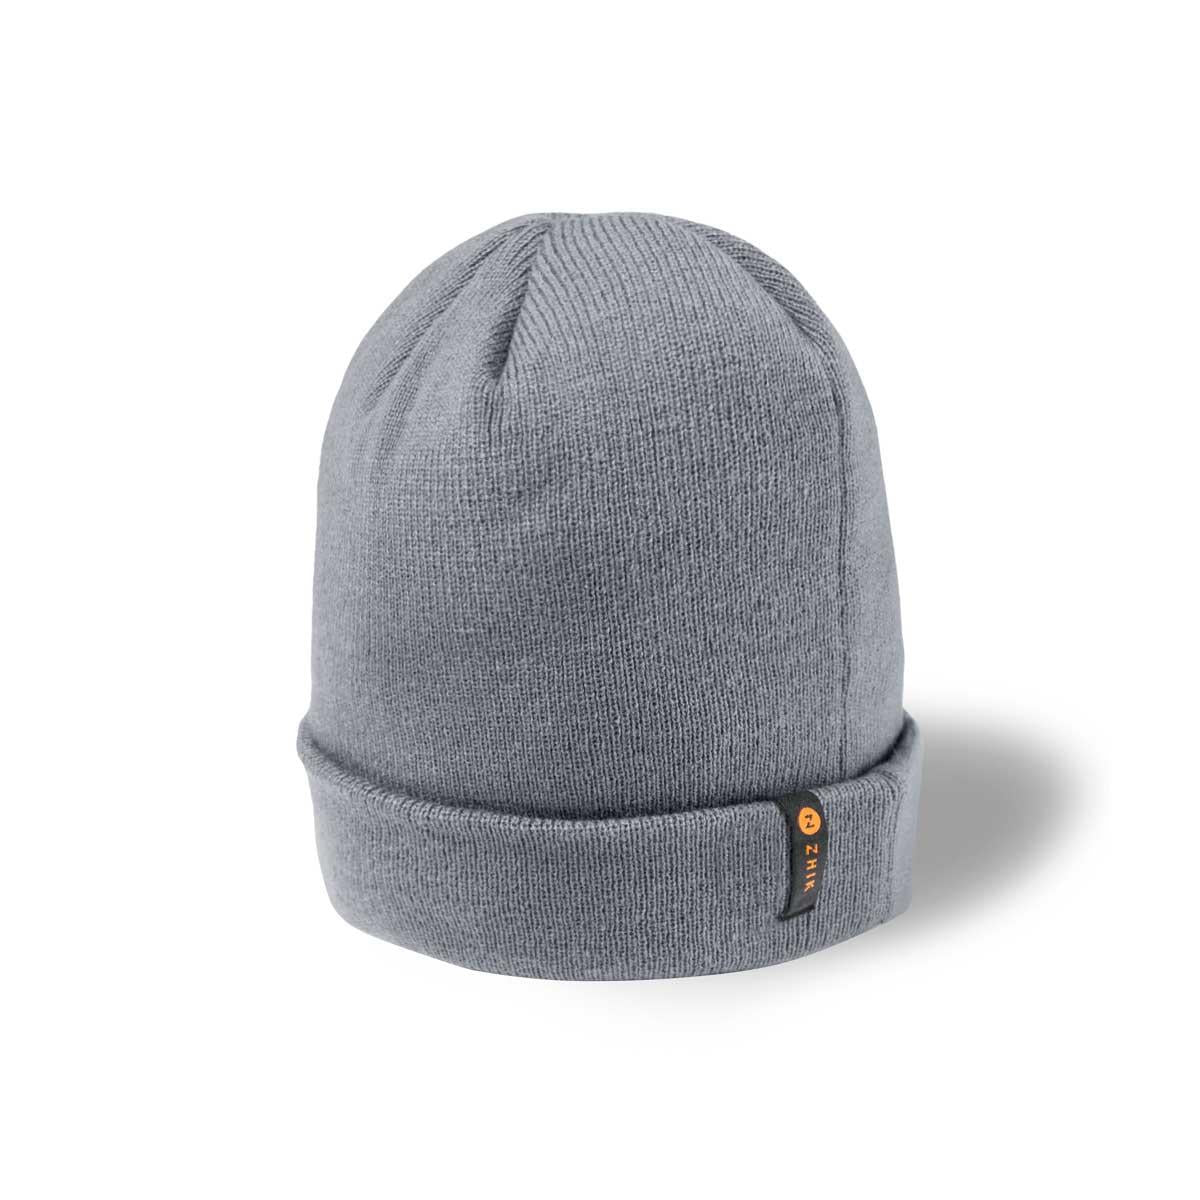 Zhik Thinsulate Beanie - Grey